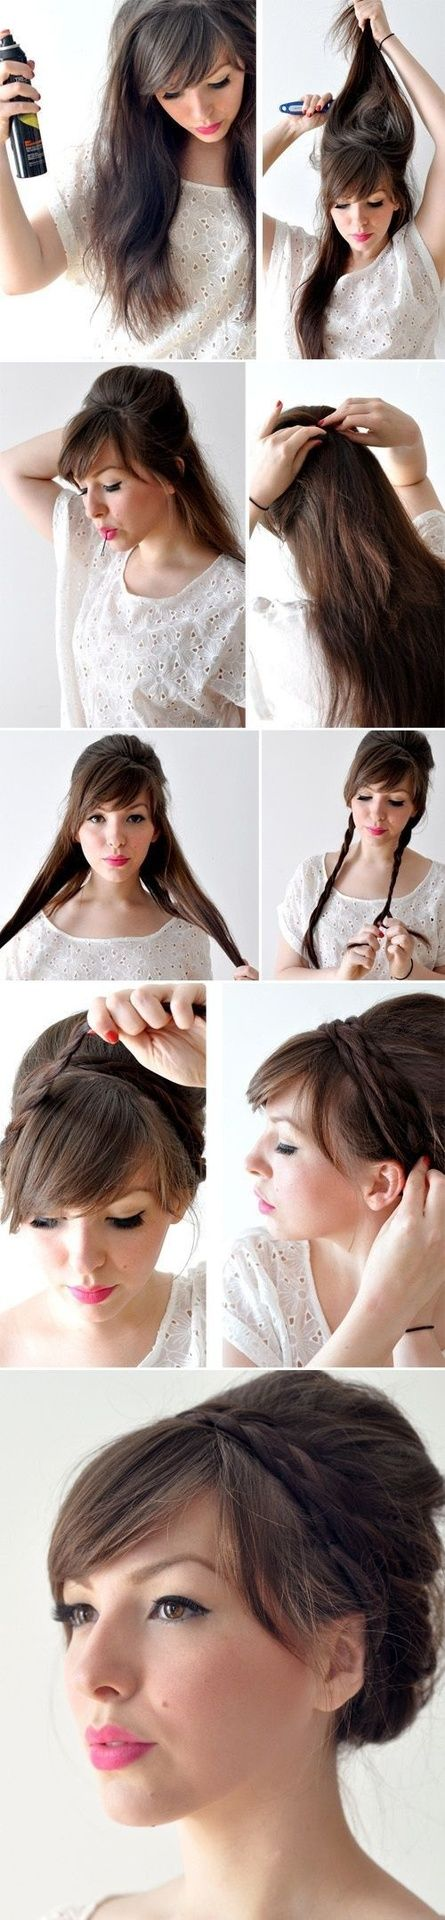 Simple updo.